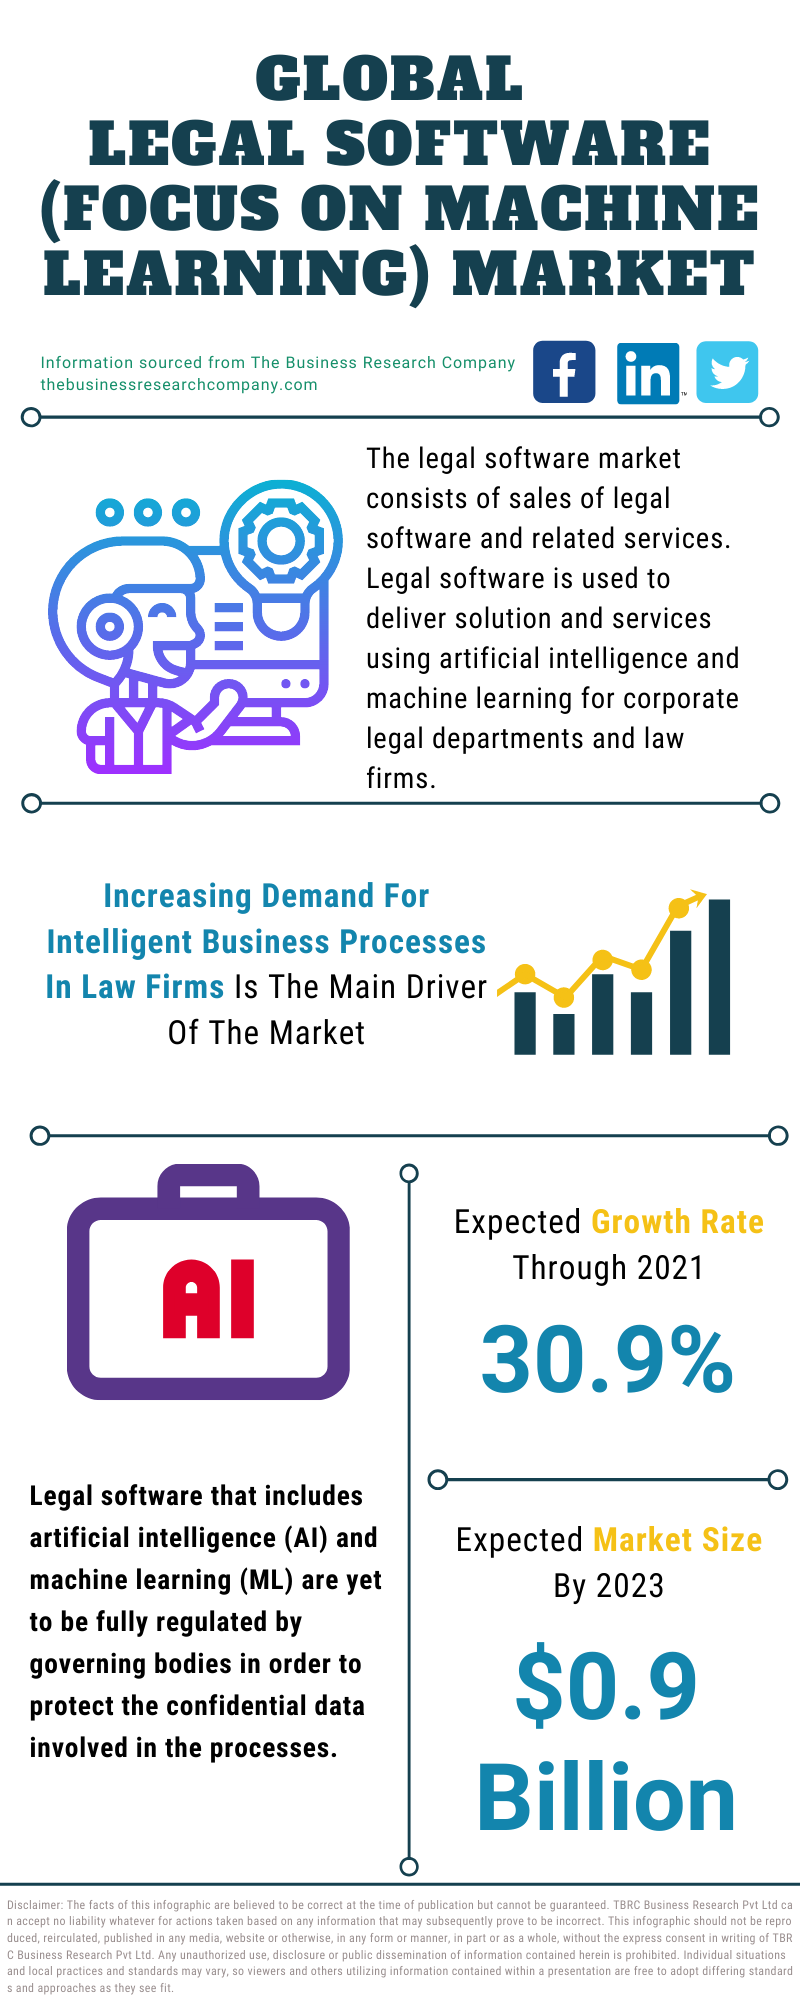 Legal Software (Focus On Machine Learning) Market